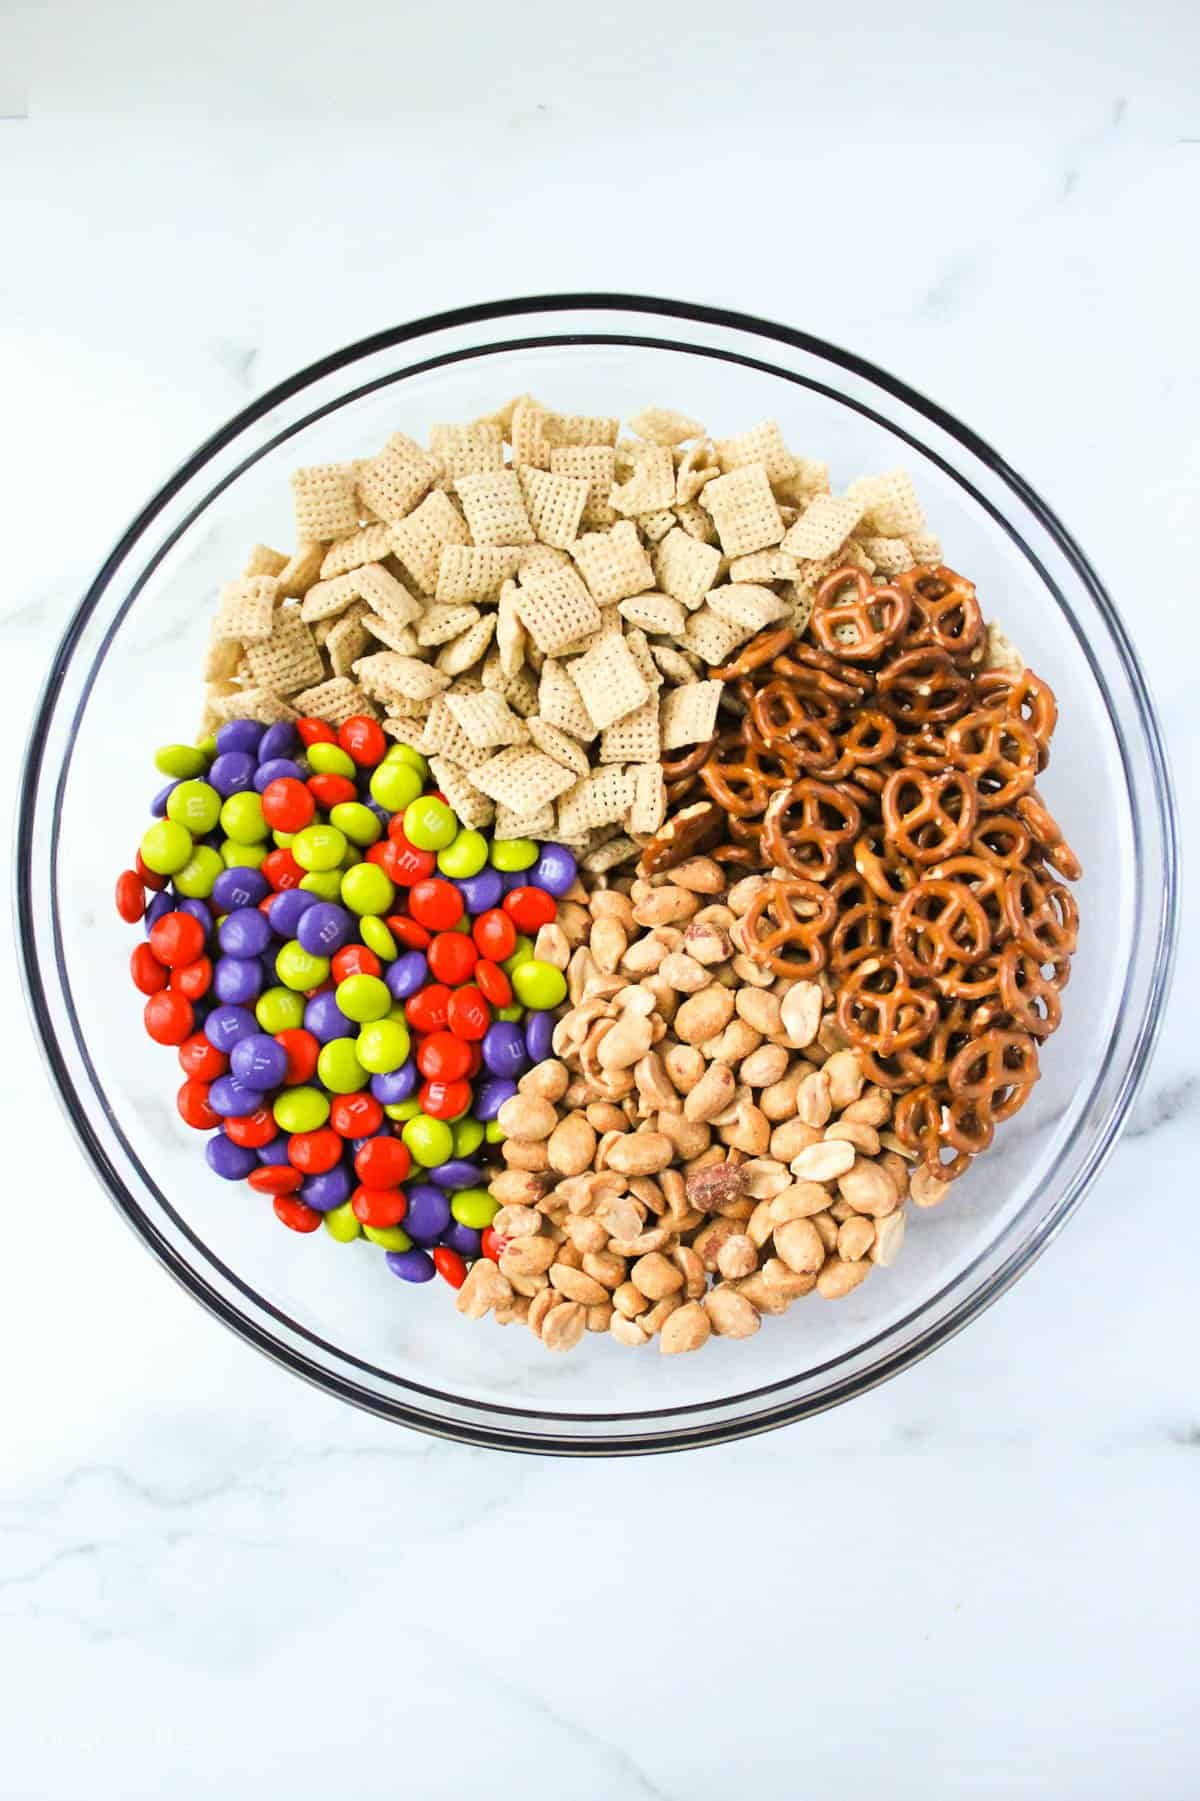 a glass mixing bowl with chex ceral, cereal, peanuts and M&Ms